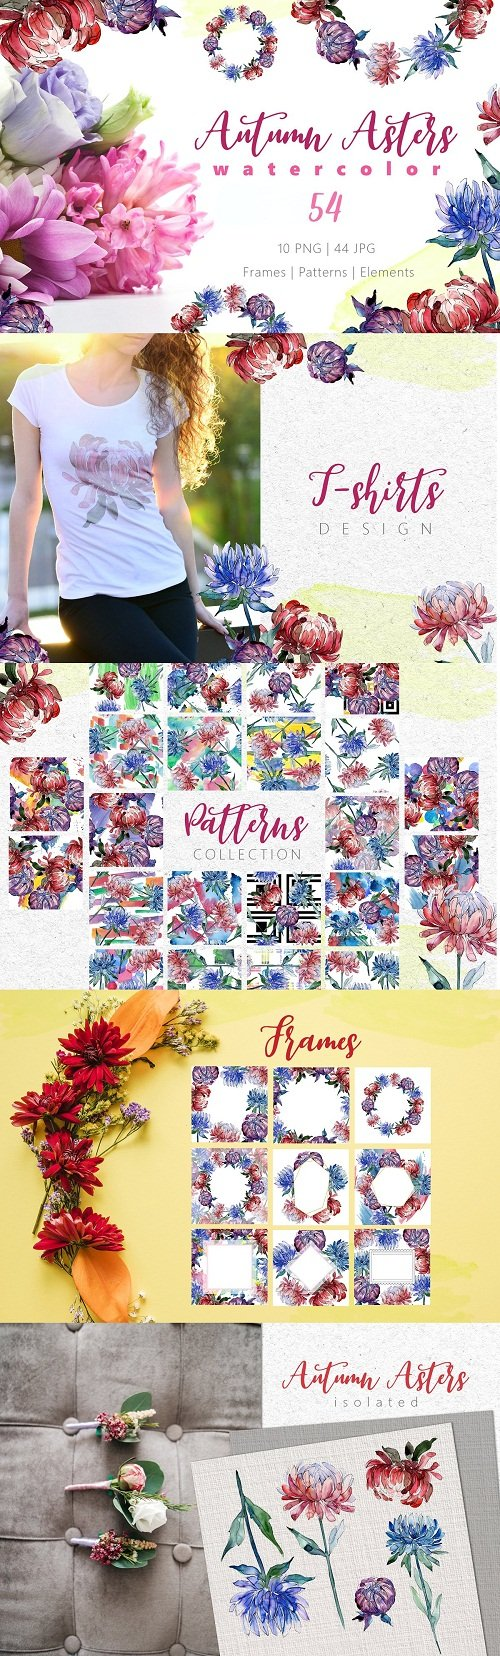 Autumn Asters Watercolor png - 3453032